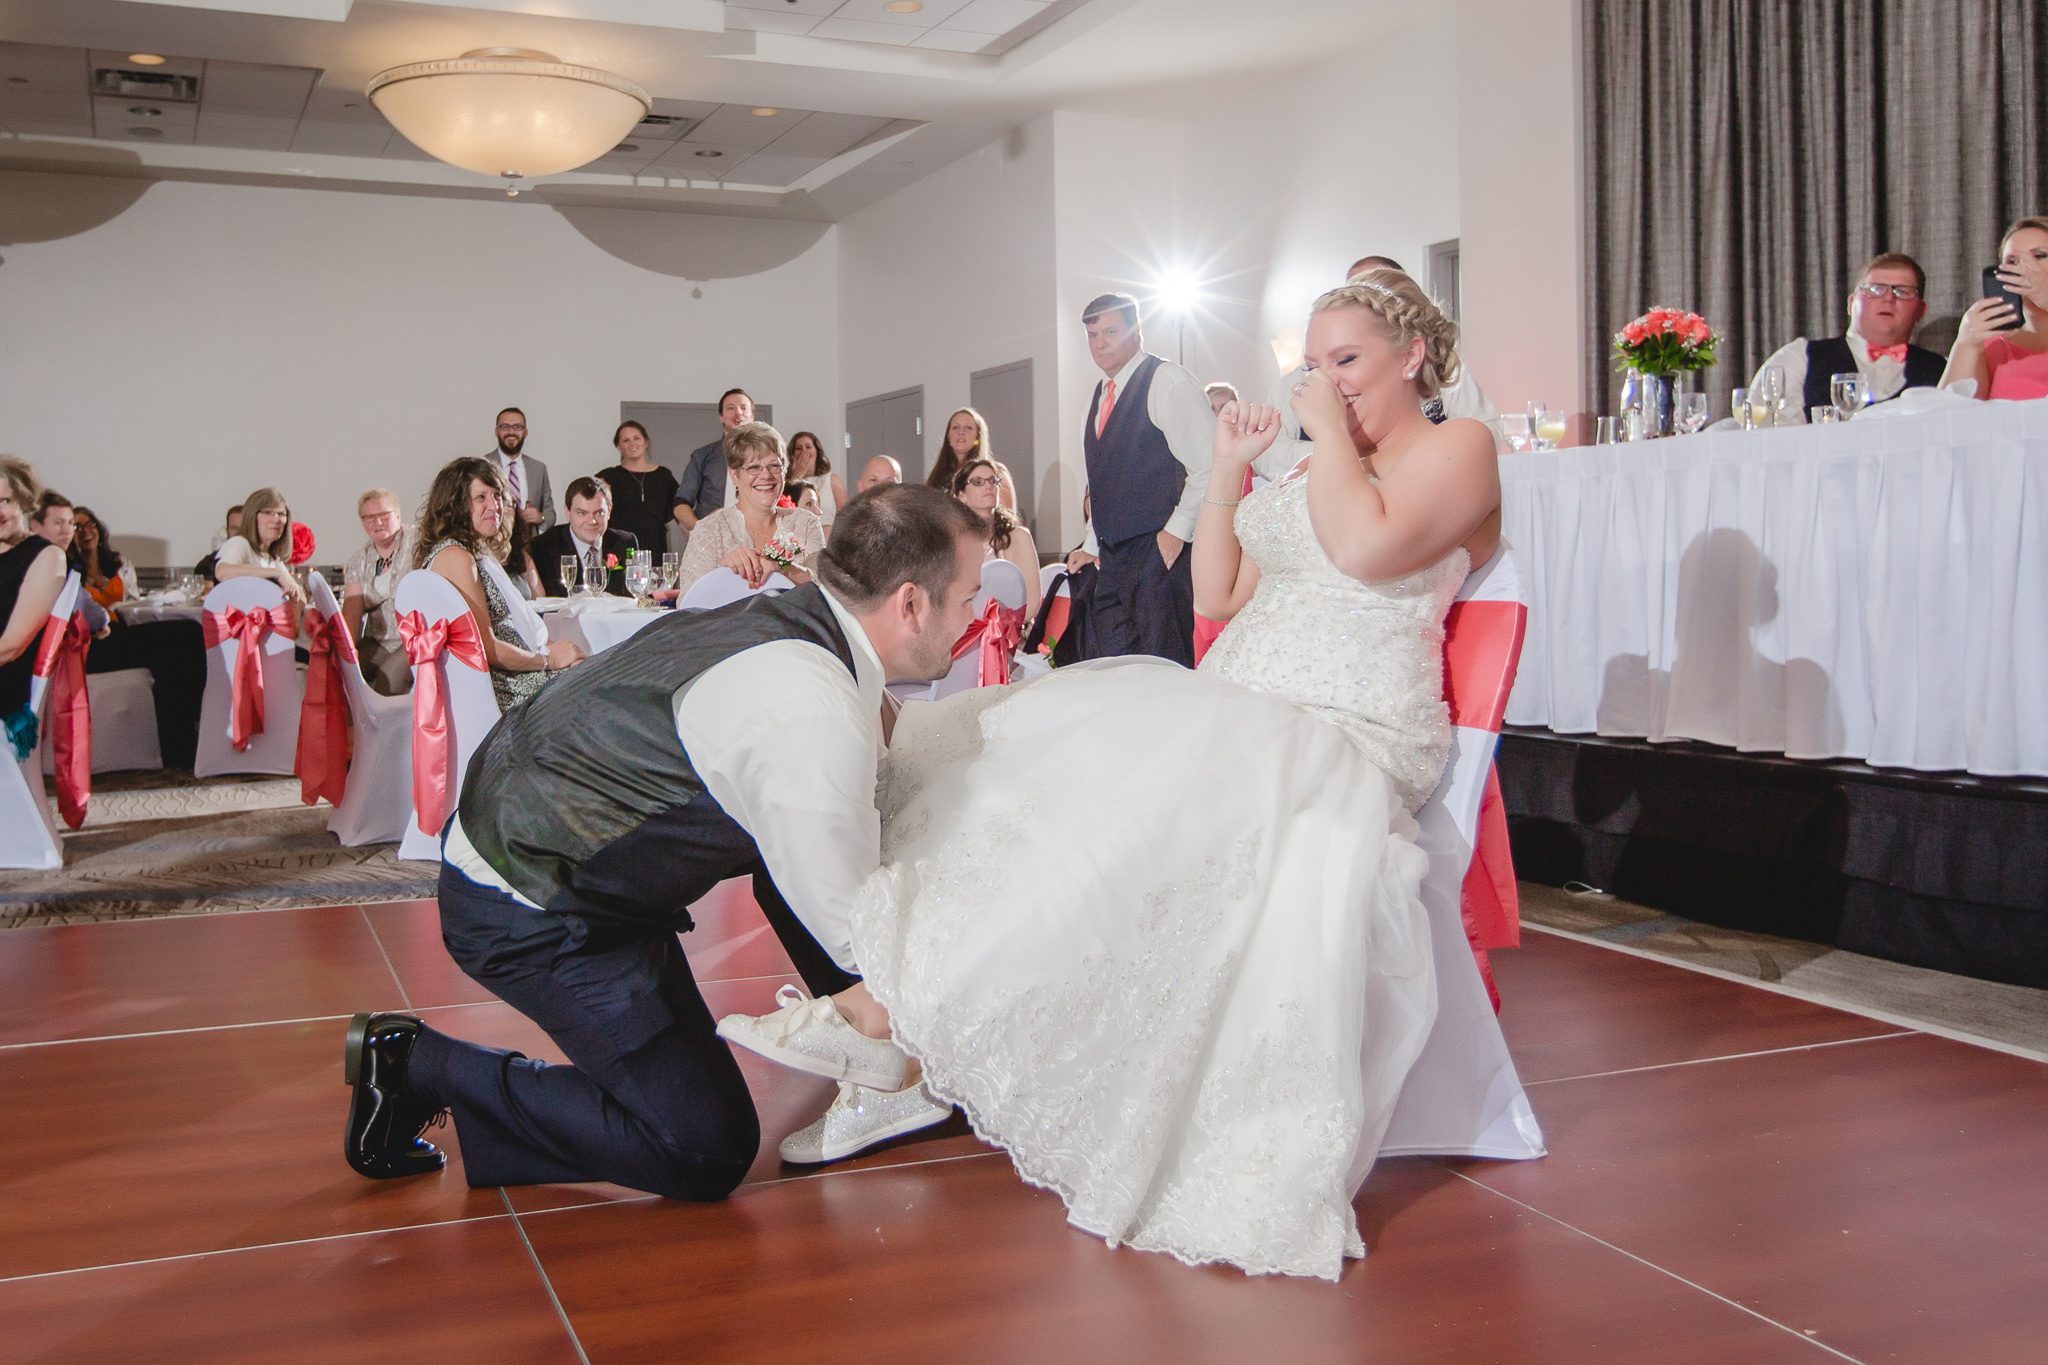 Groom reaches up the bride's dress for her garter